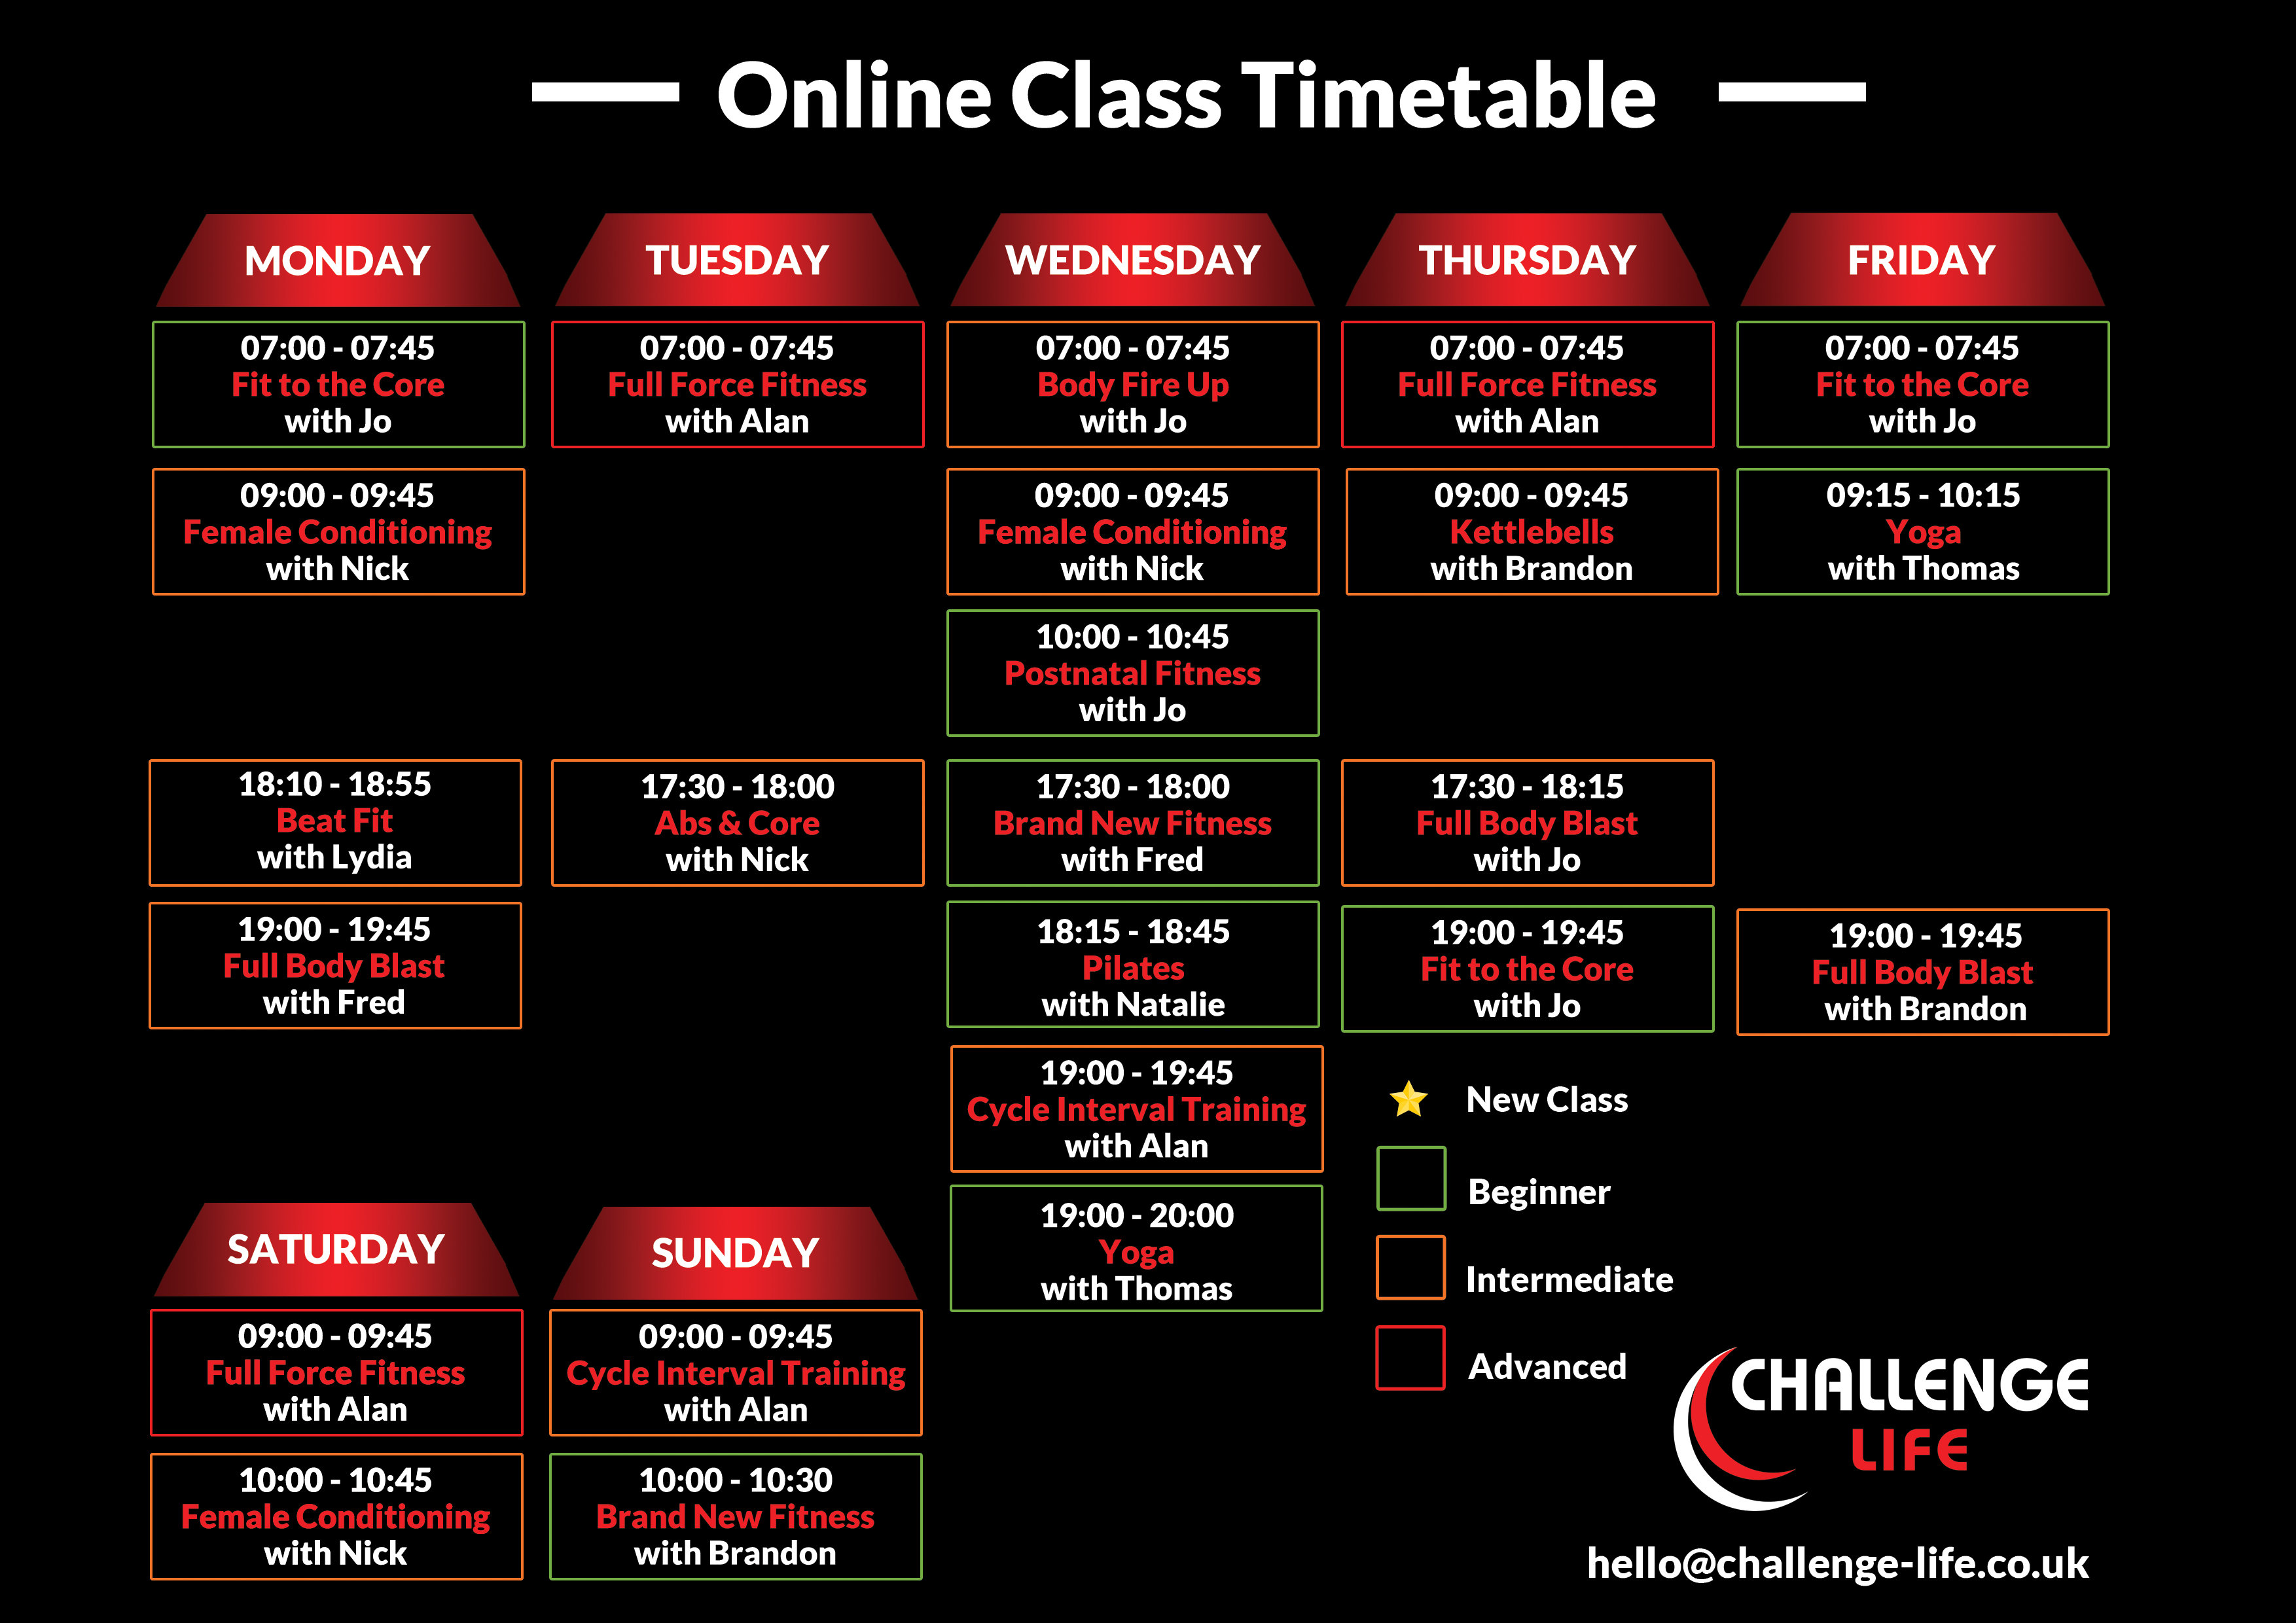 Online Class Timetable